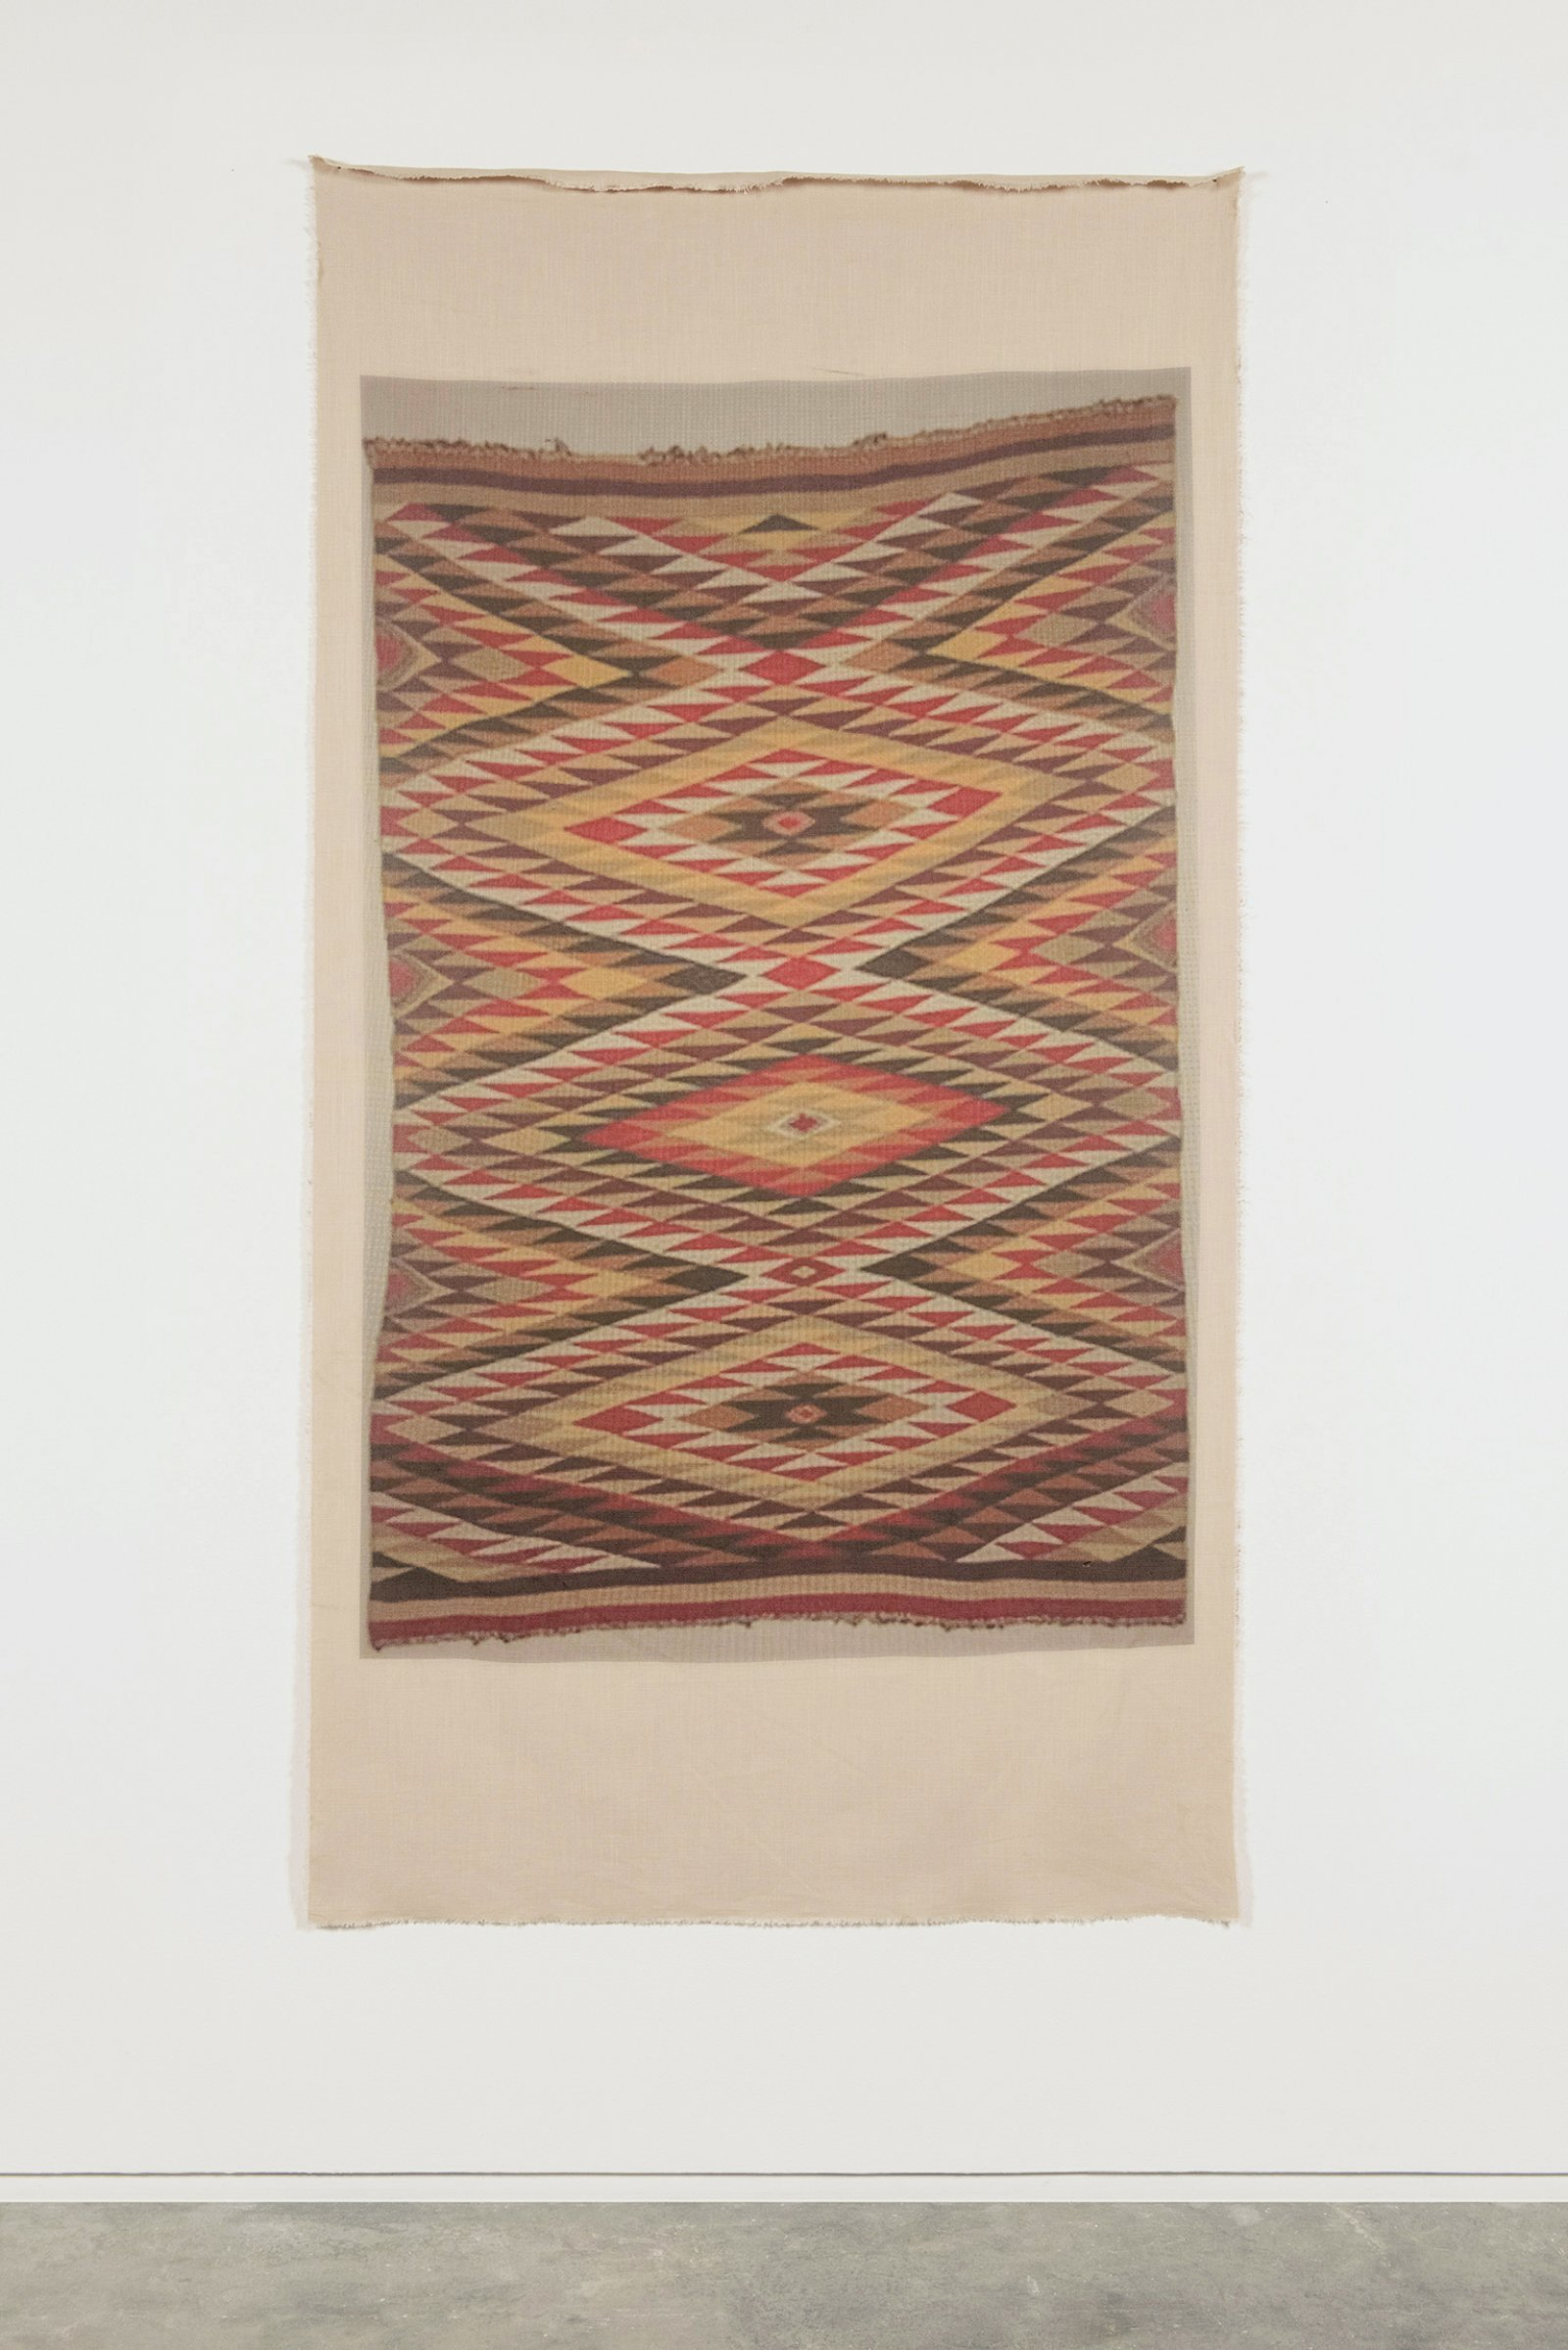 Duane Linklater, UMFA 1975.078.020.013, 2015, inkjet print on linen, nails, from Navajo Rug, Utah Museum of Fine Arts Collection, 85 x 44 in. (216 x 112 cm)